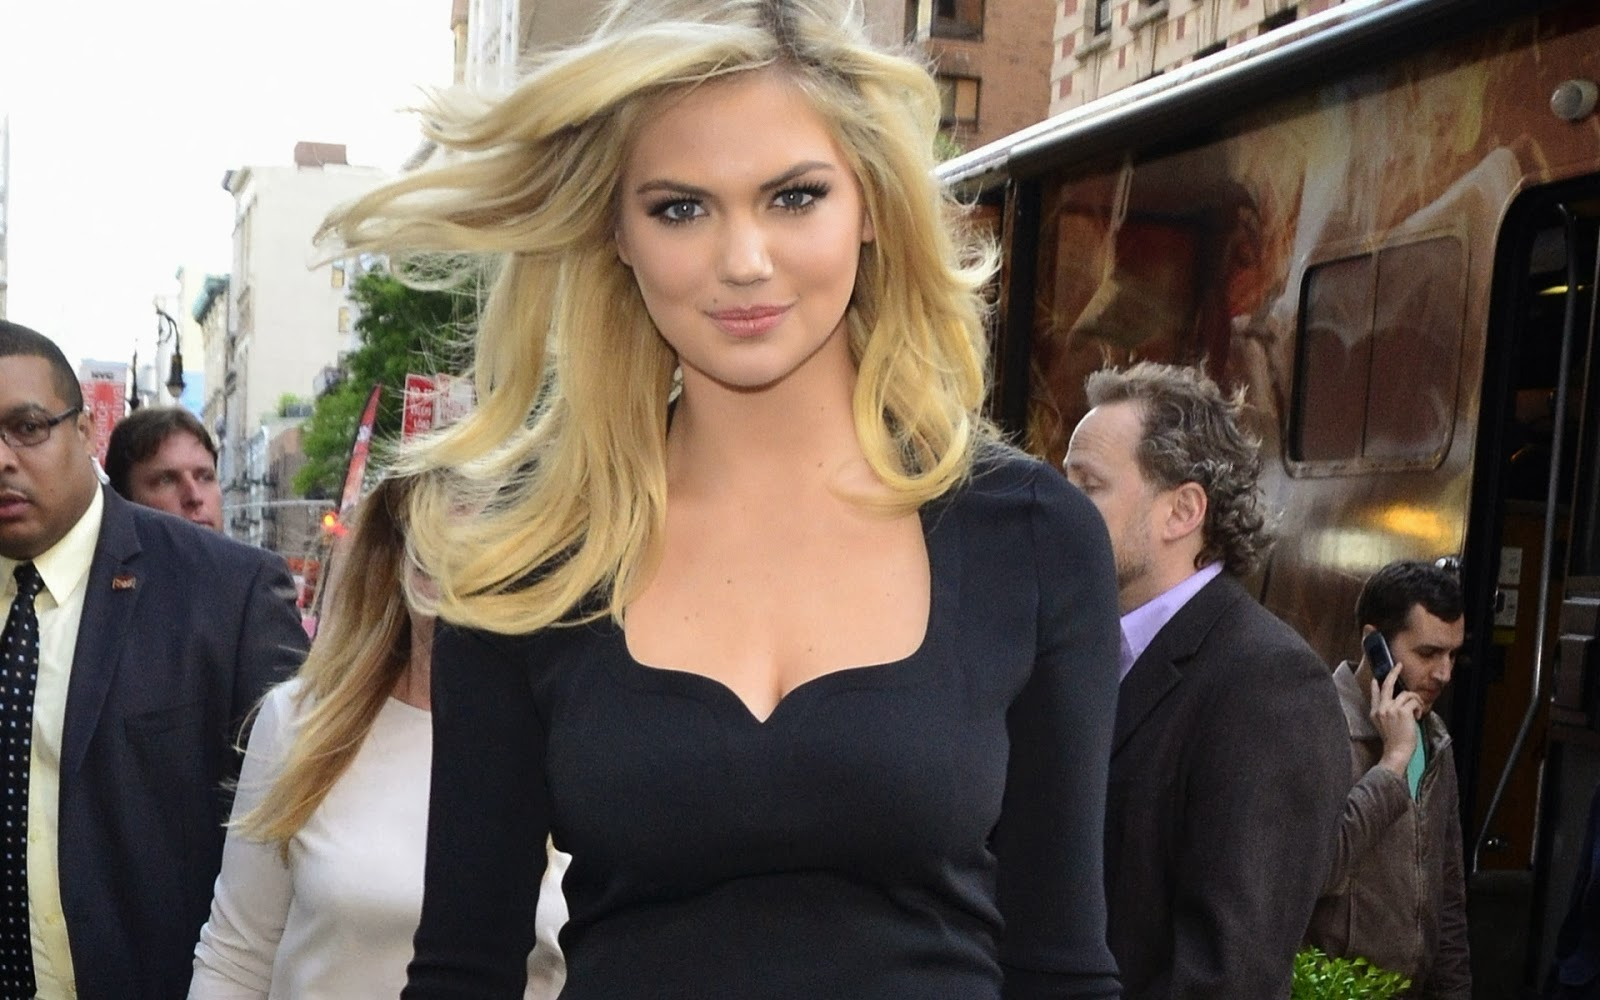 HD-Kate-Upton-HD-Kate-Upton-Female-Celebrity-Pictures-HD-wallpaper-wp4005222